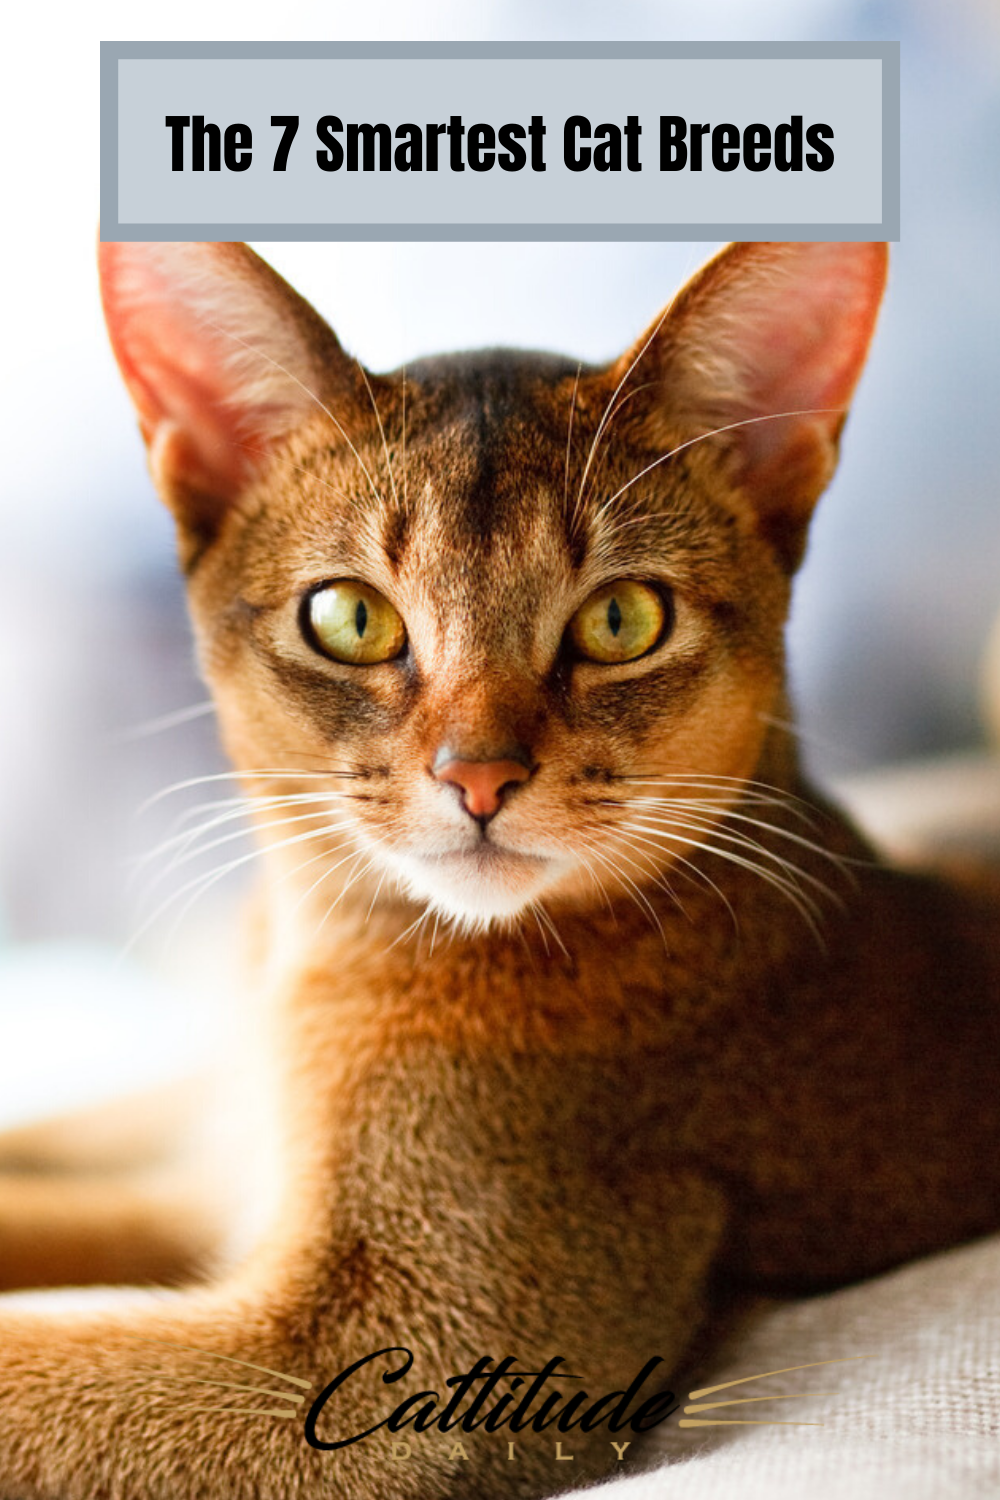 The Seven Smartest Cat Breeds In 2020 Cat Breeds All Cat Breeds Cat Facts